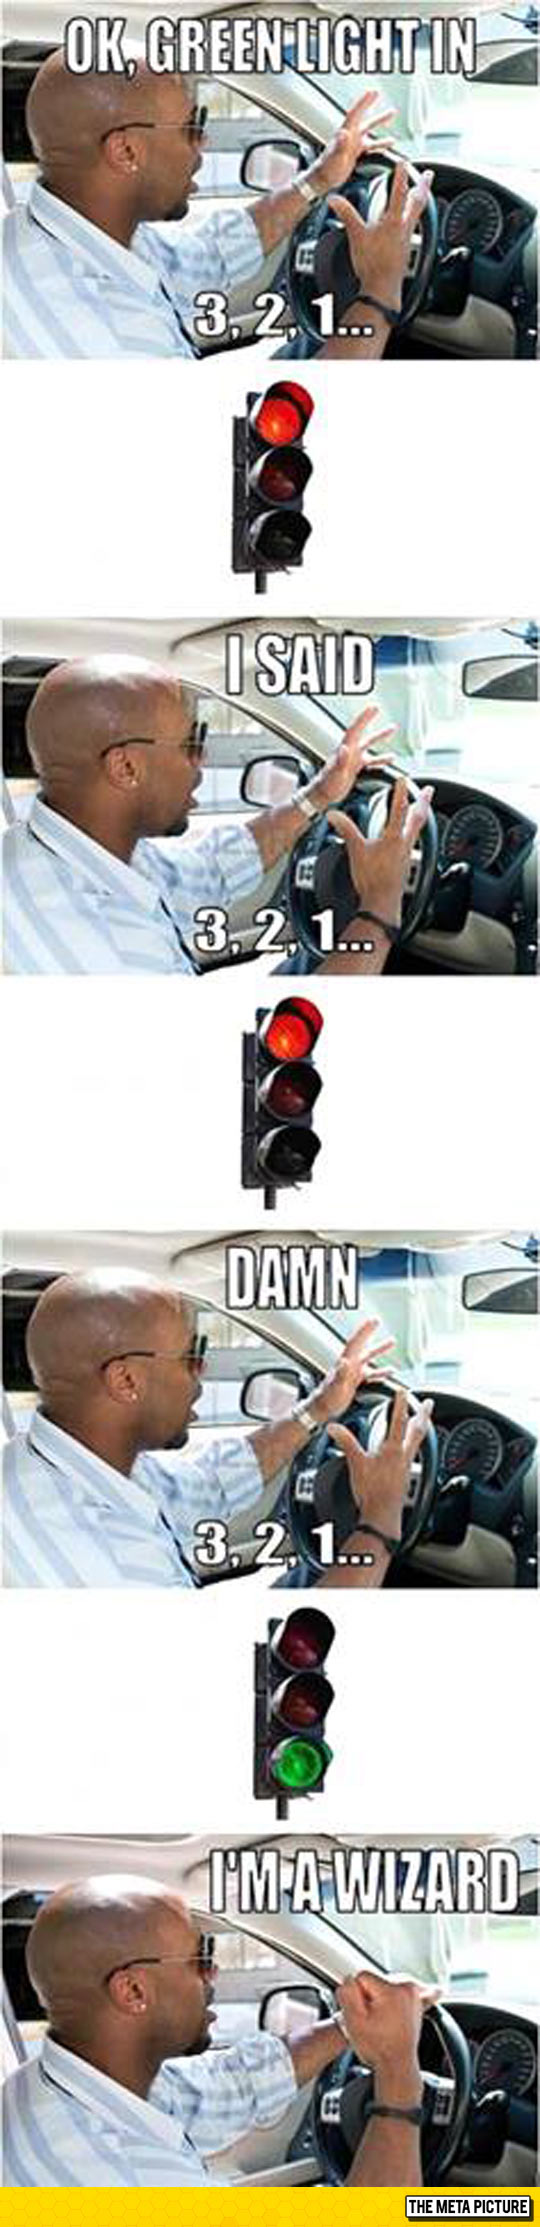 Every Time I Try To Predict The Traffic Light